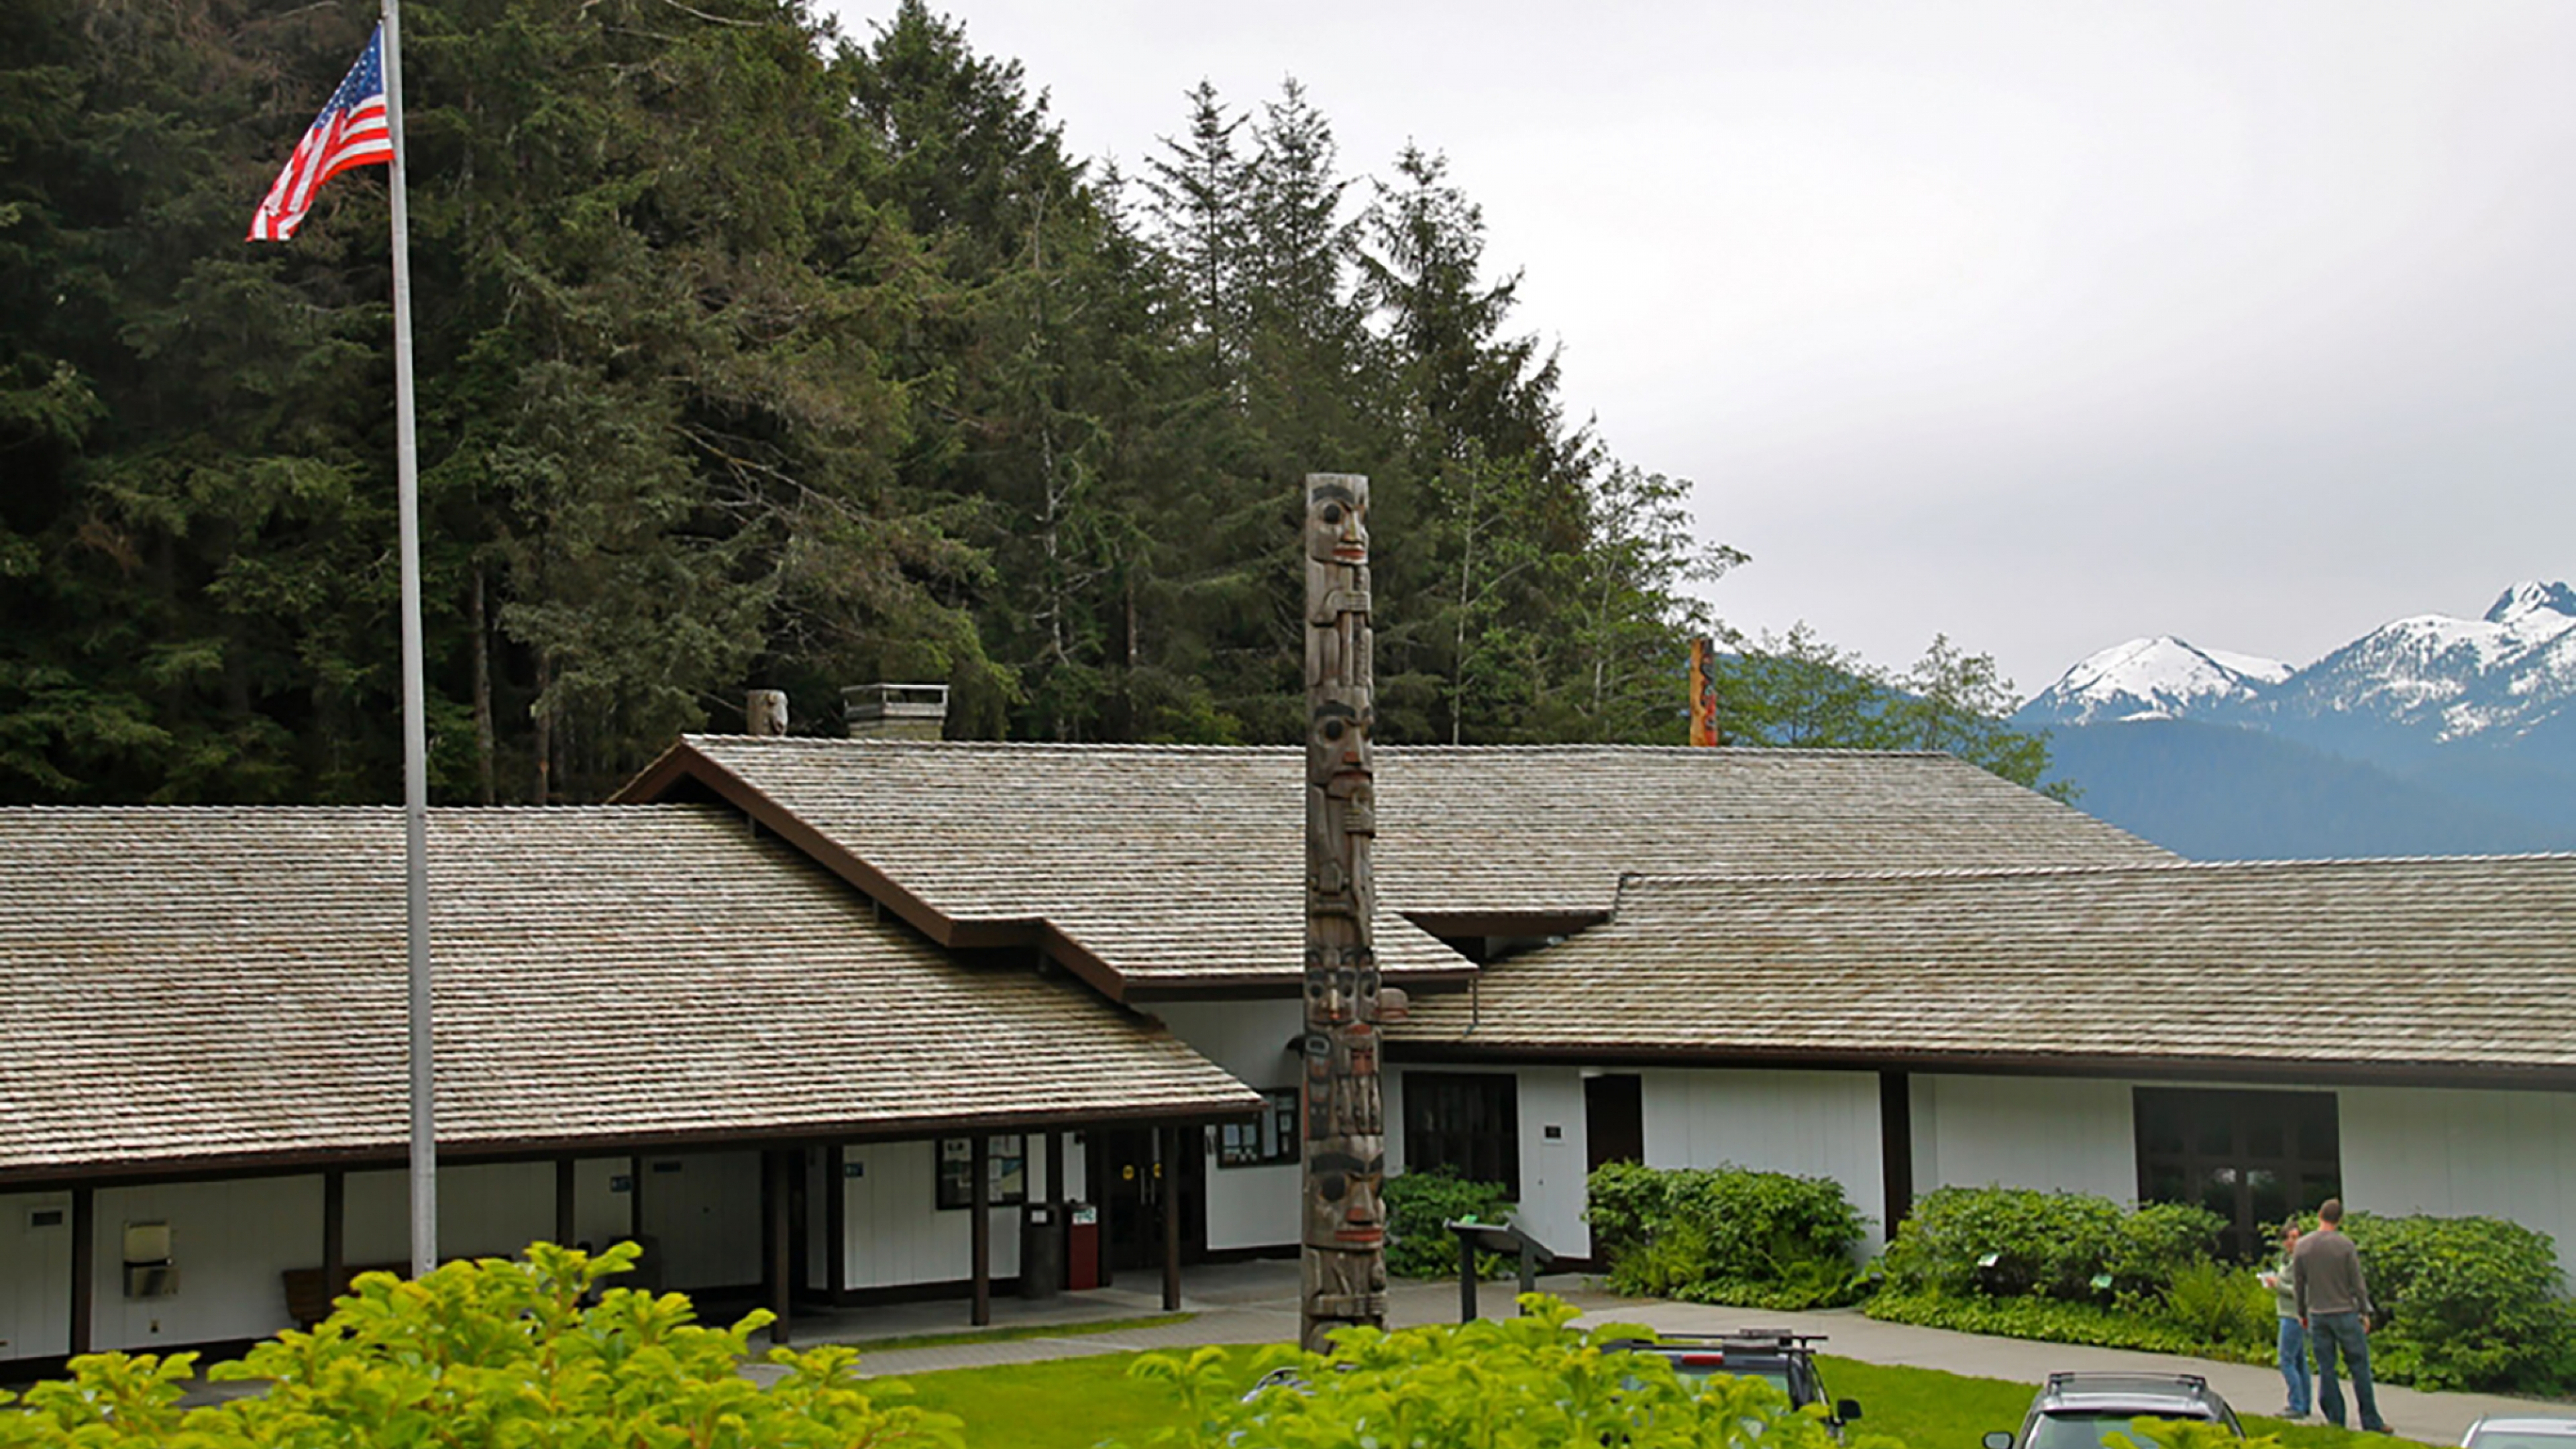 Visitor center with a totem pole and an American flag in front and mountains in the background.